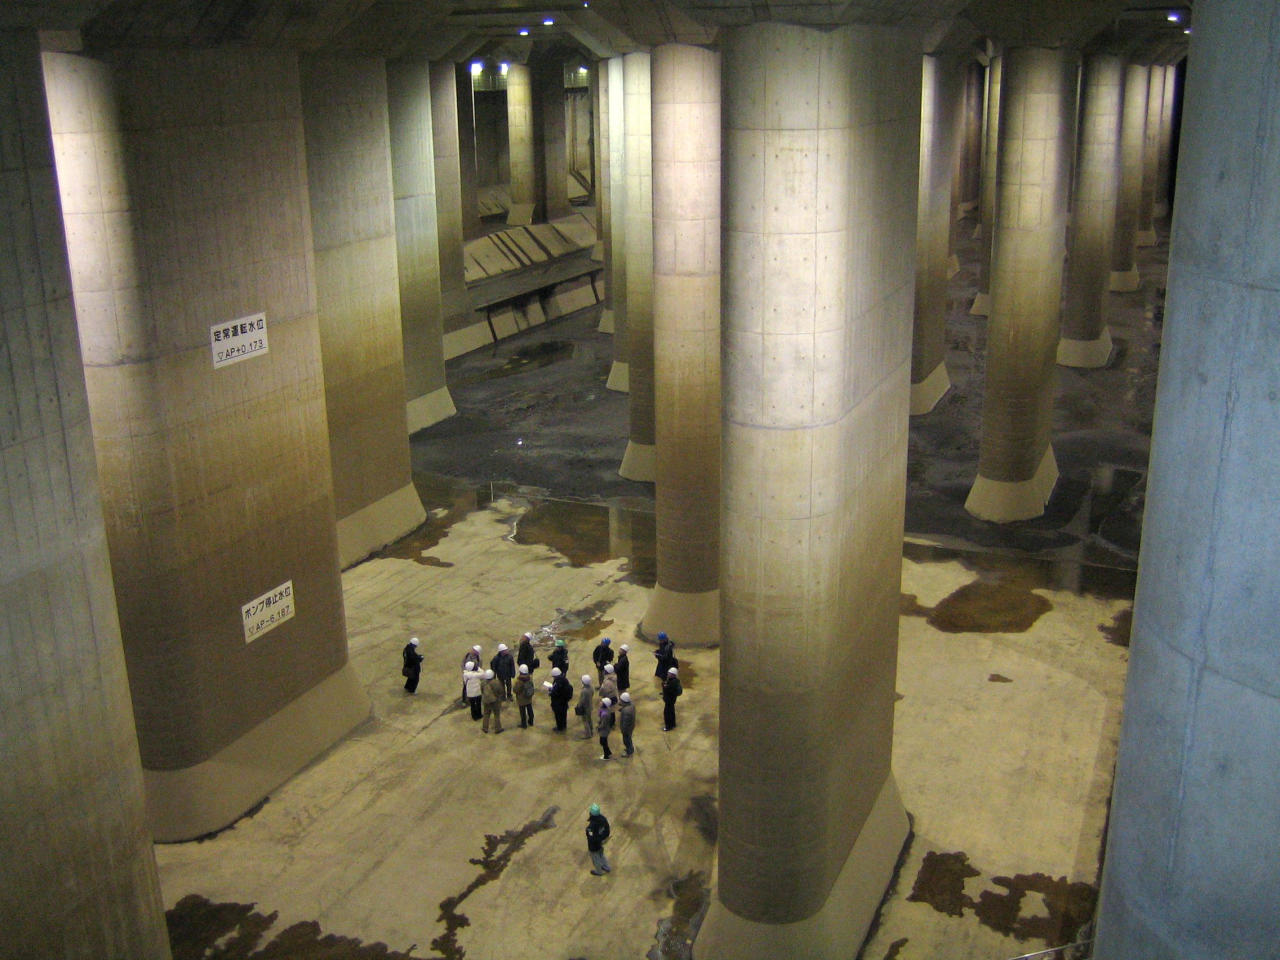 Visitors look at the pressure-controlled water tank at the Metropolitan  Area Outer Underground Discharge Channel in Kusakabe, north of Tokyo.<br><br>(Photo: REUTERS/Ministry of Land, Infrastructure, Transport and Tourism-Edogawa  River Office/Handout)